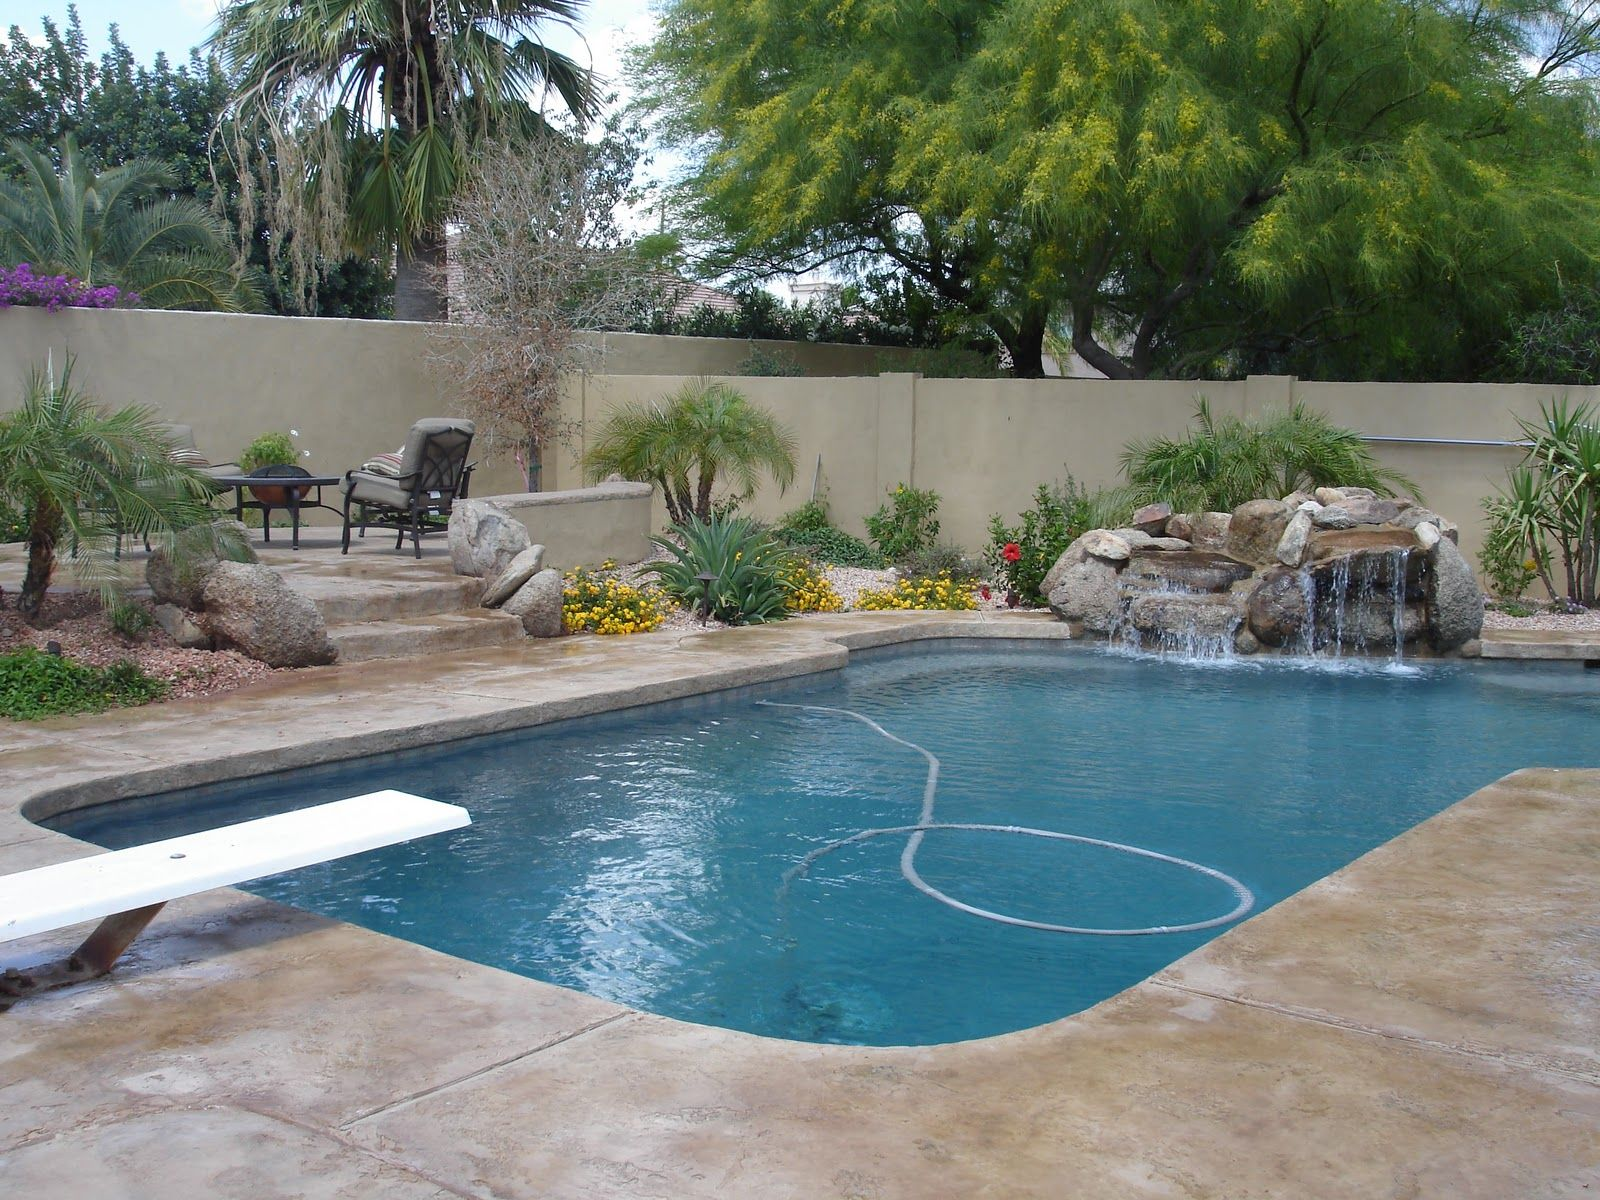 12 best pool images on Pinterest | Pool ideas, Backyard ideas and ...